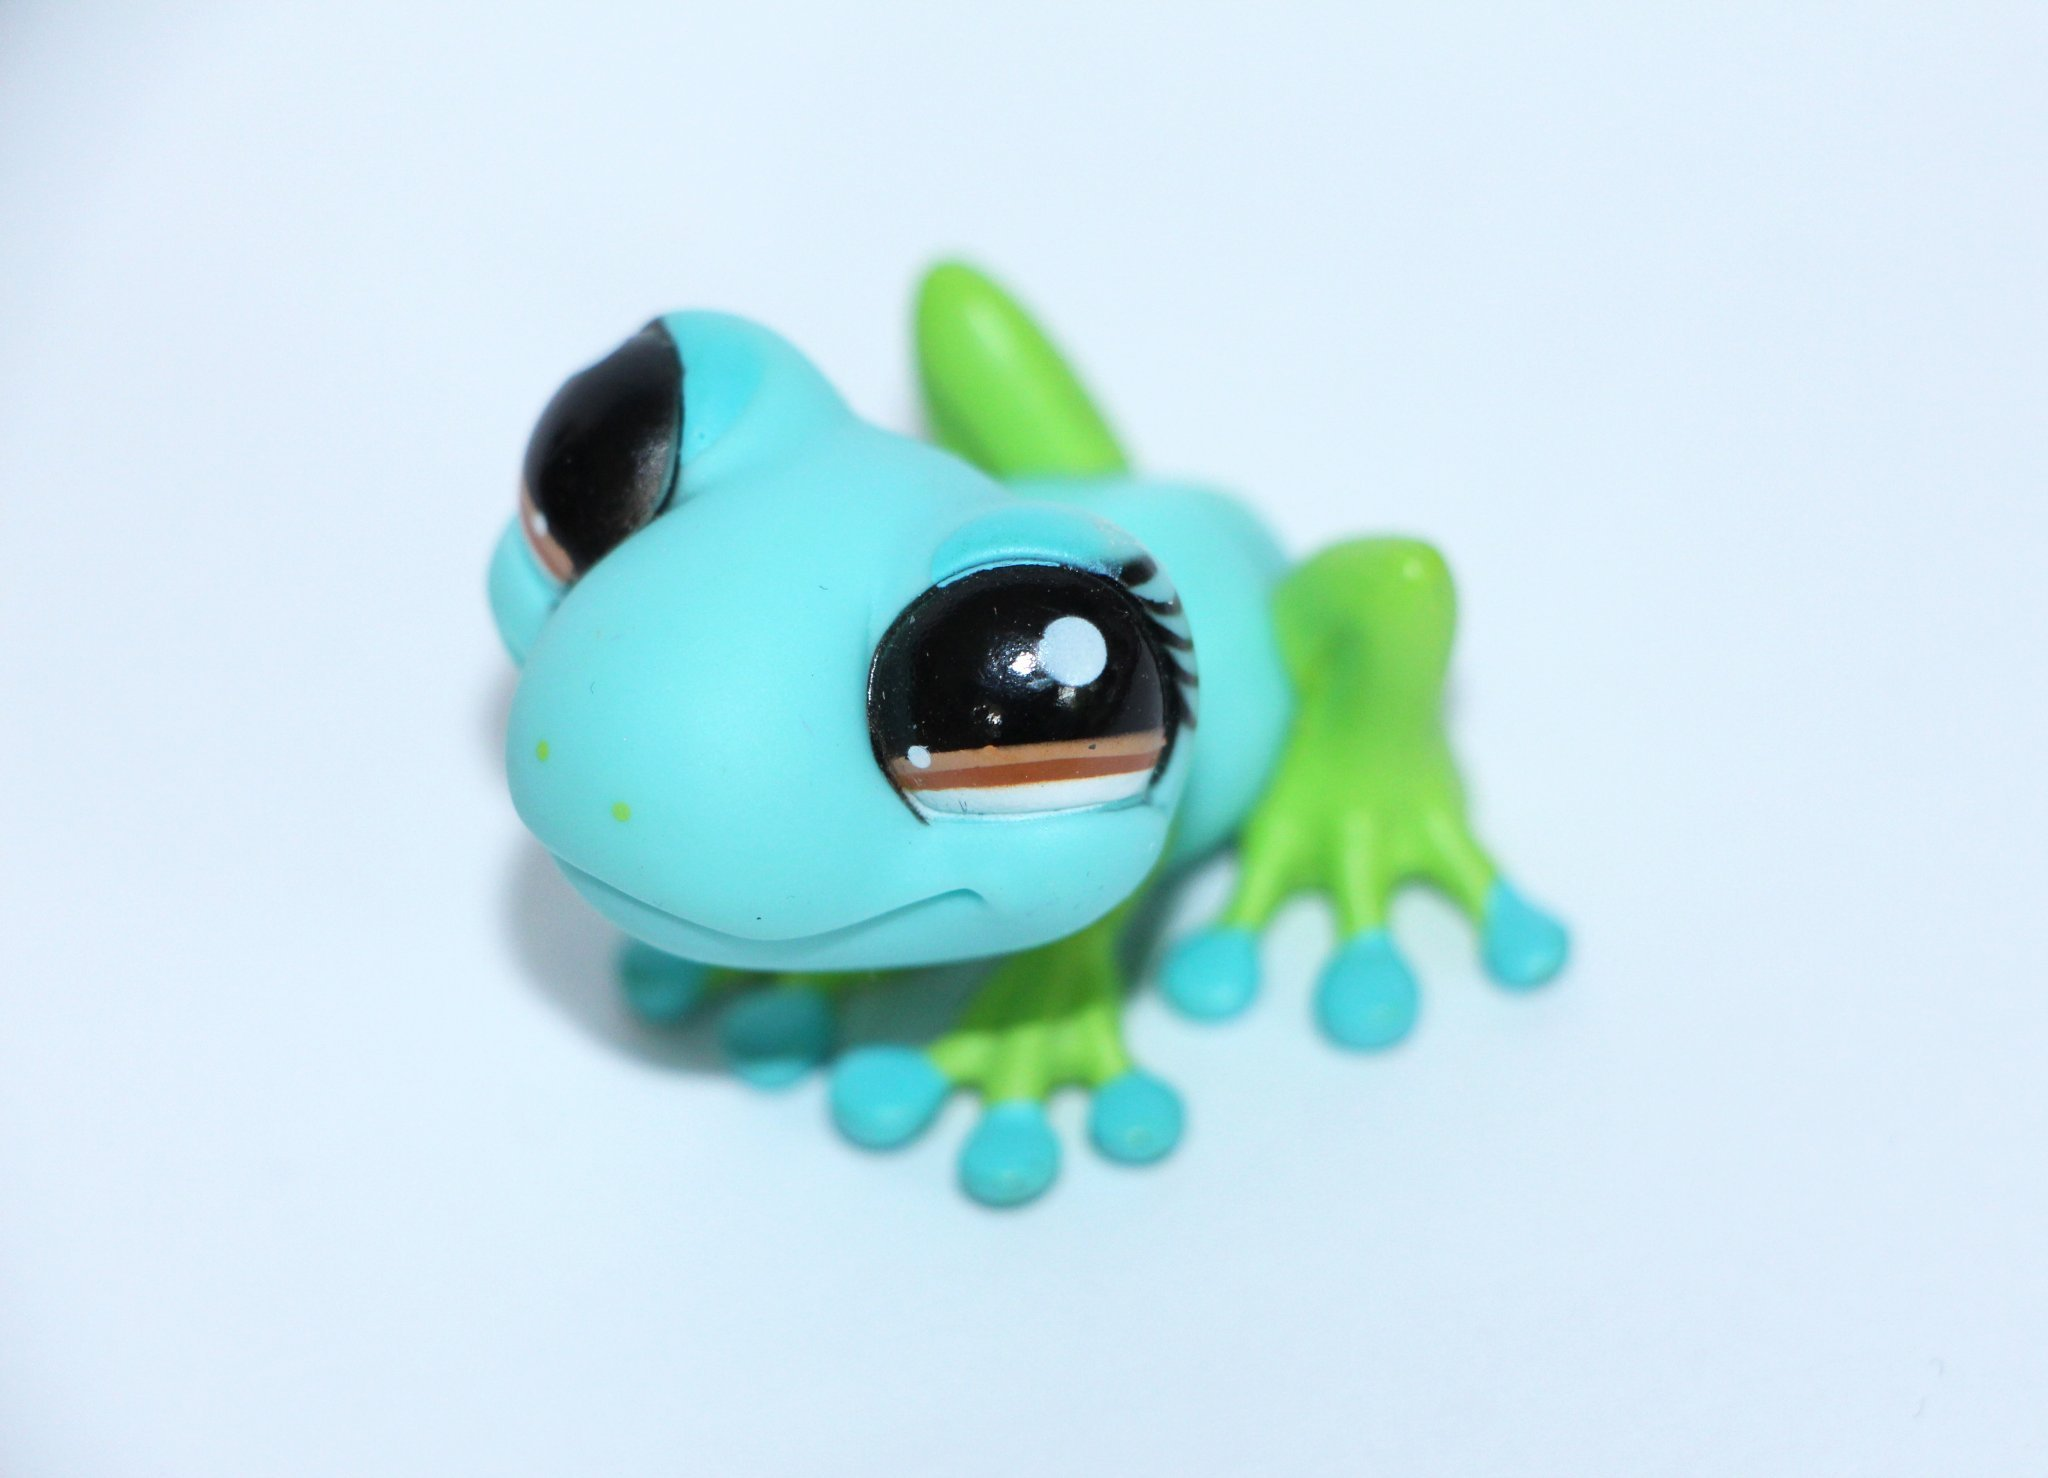 Groda - Littlest Pet Shop, Petshop, Pet shops, Petshops, Lps